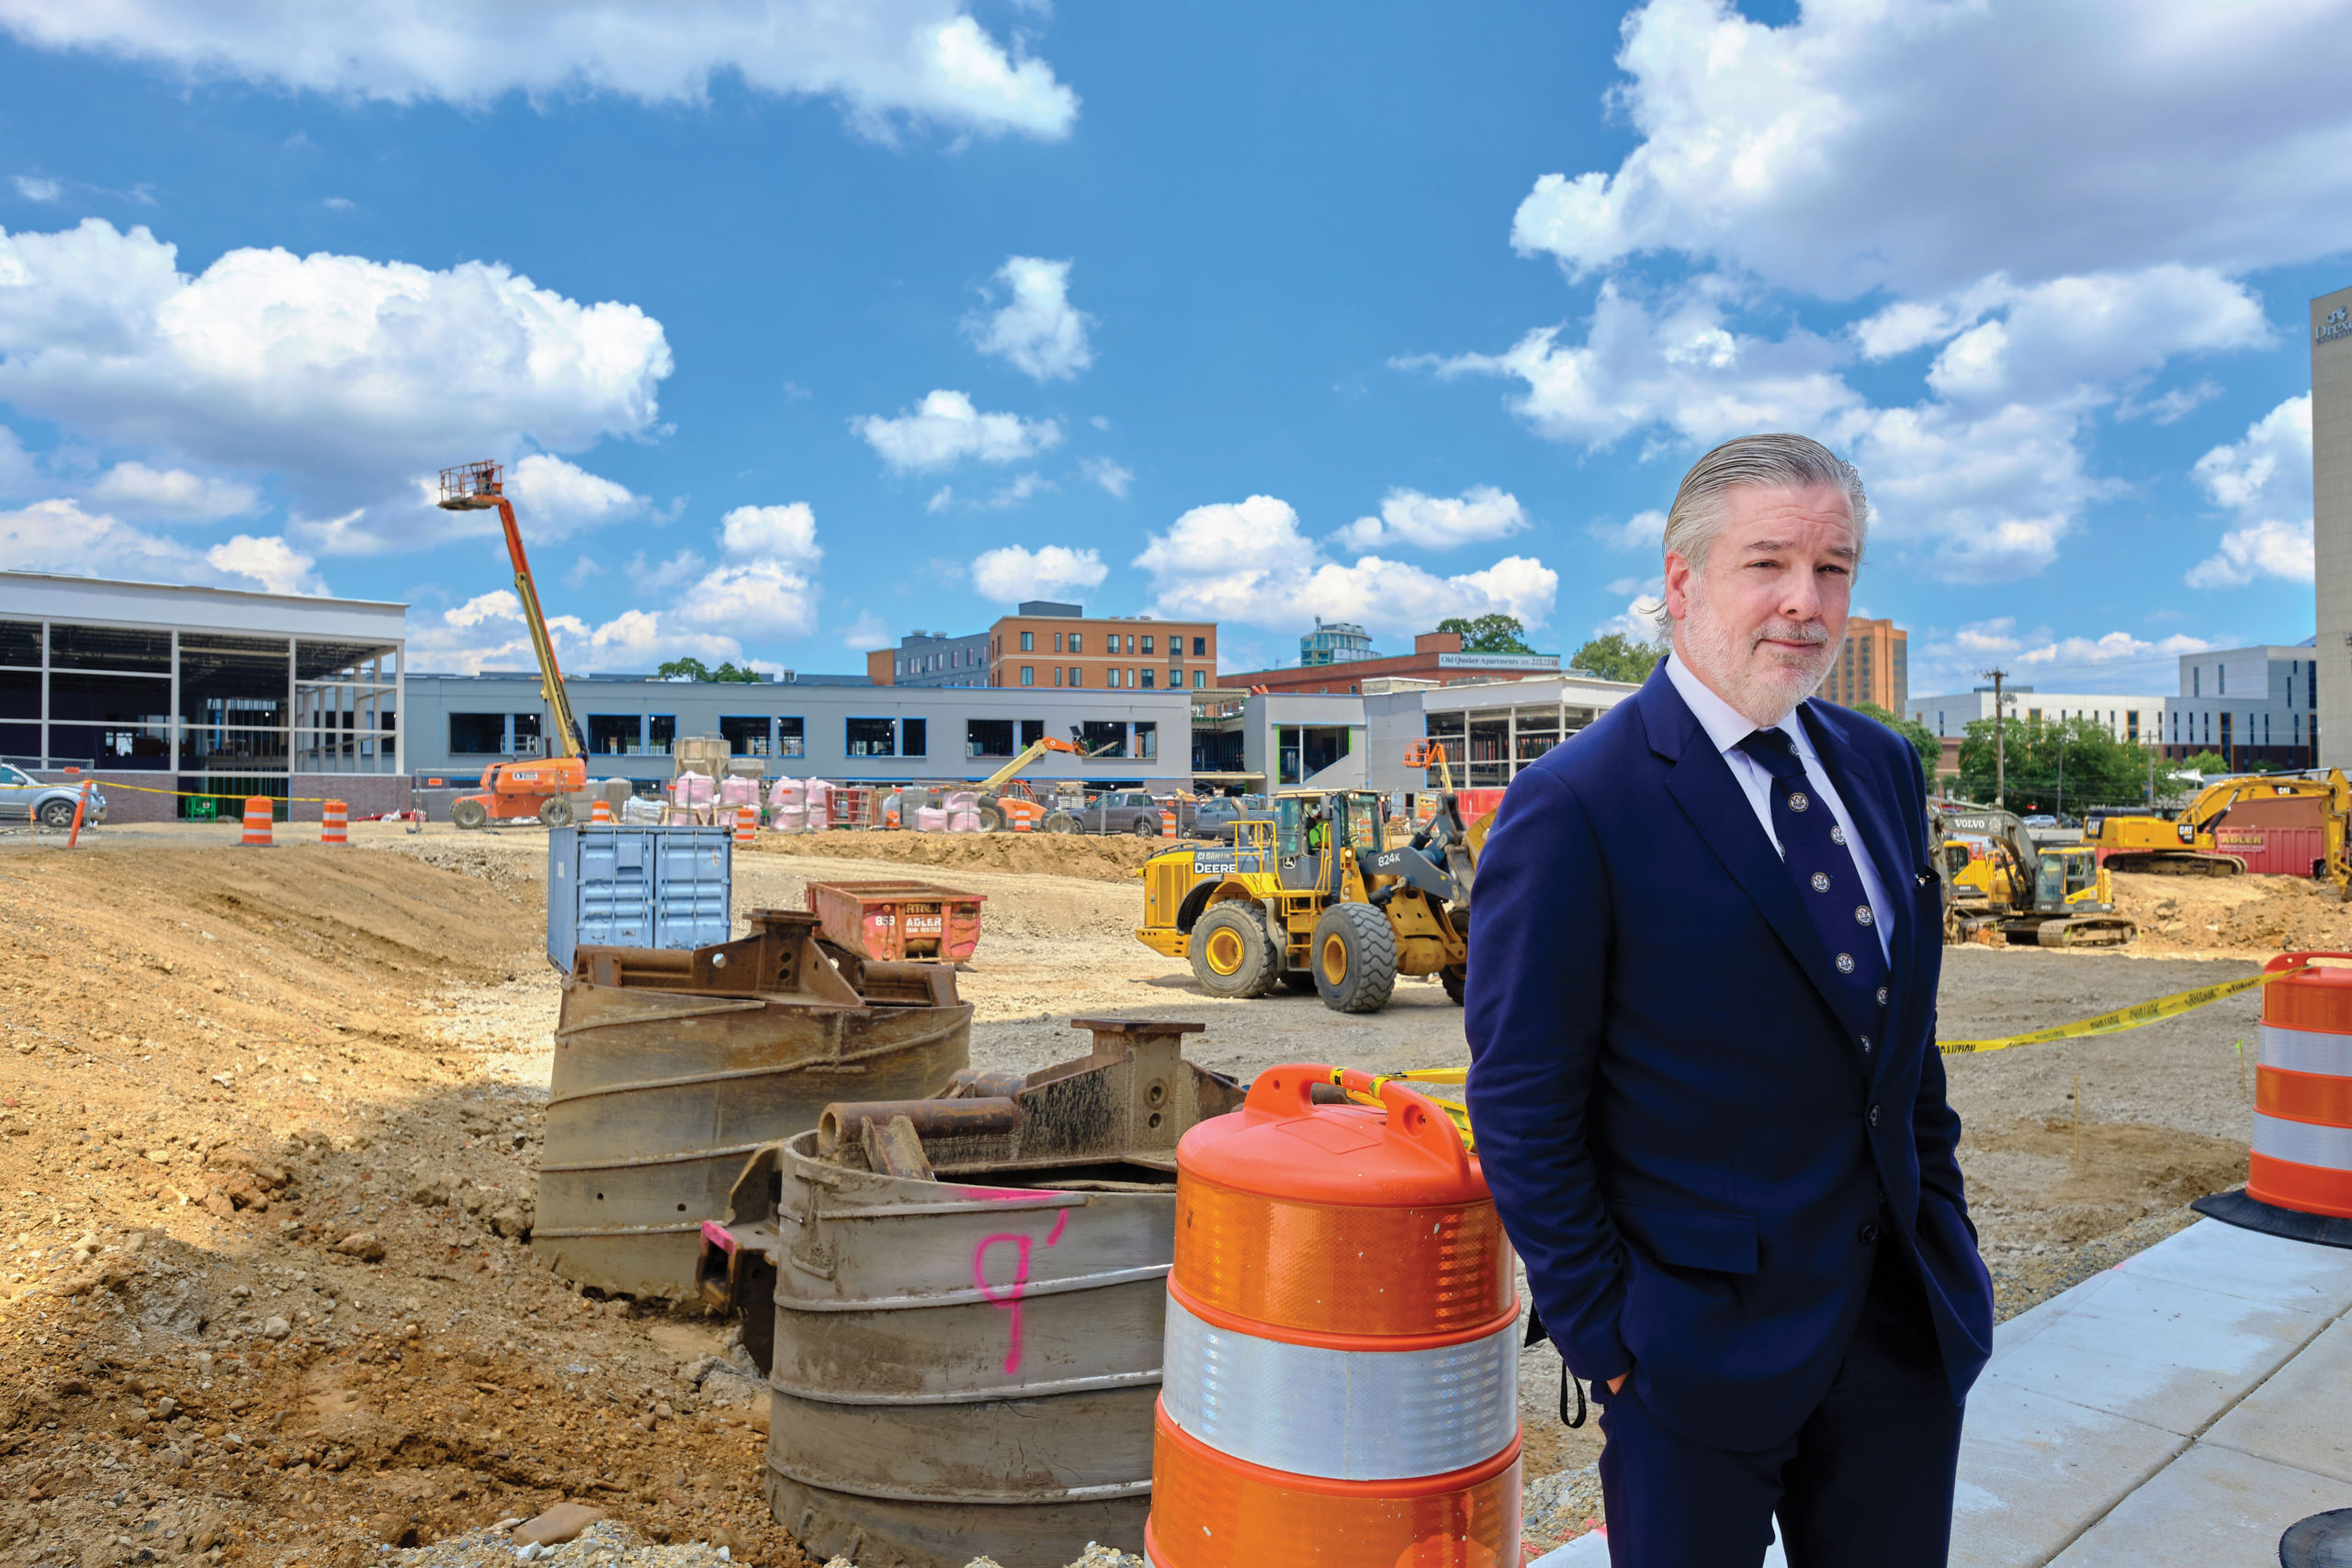 President John Fry, on the uCity Square site